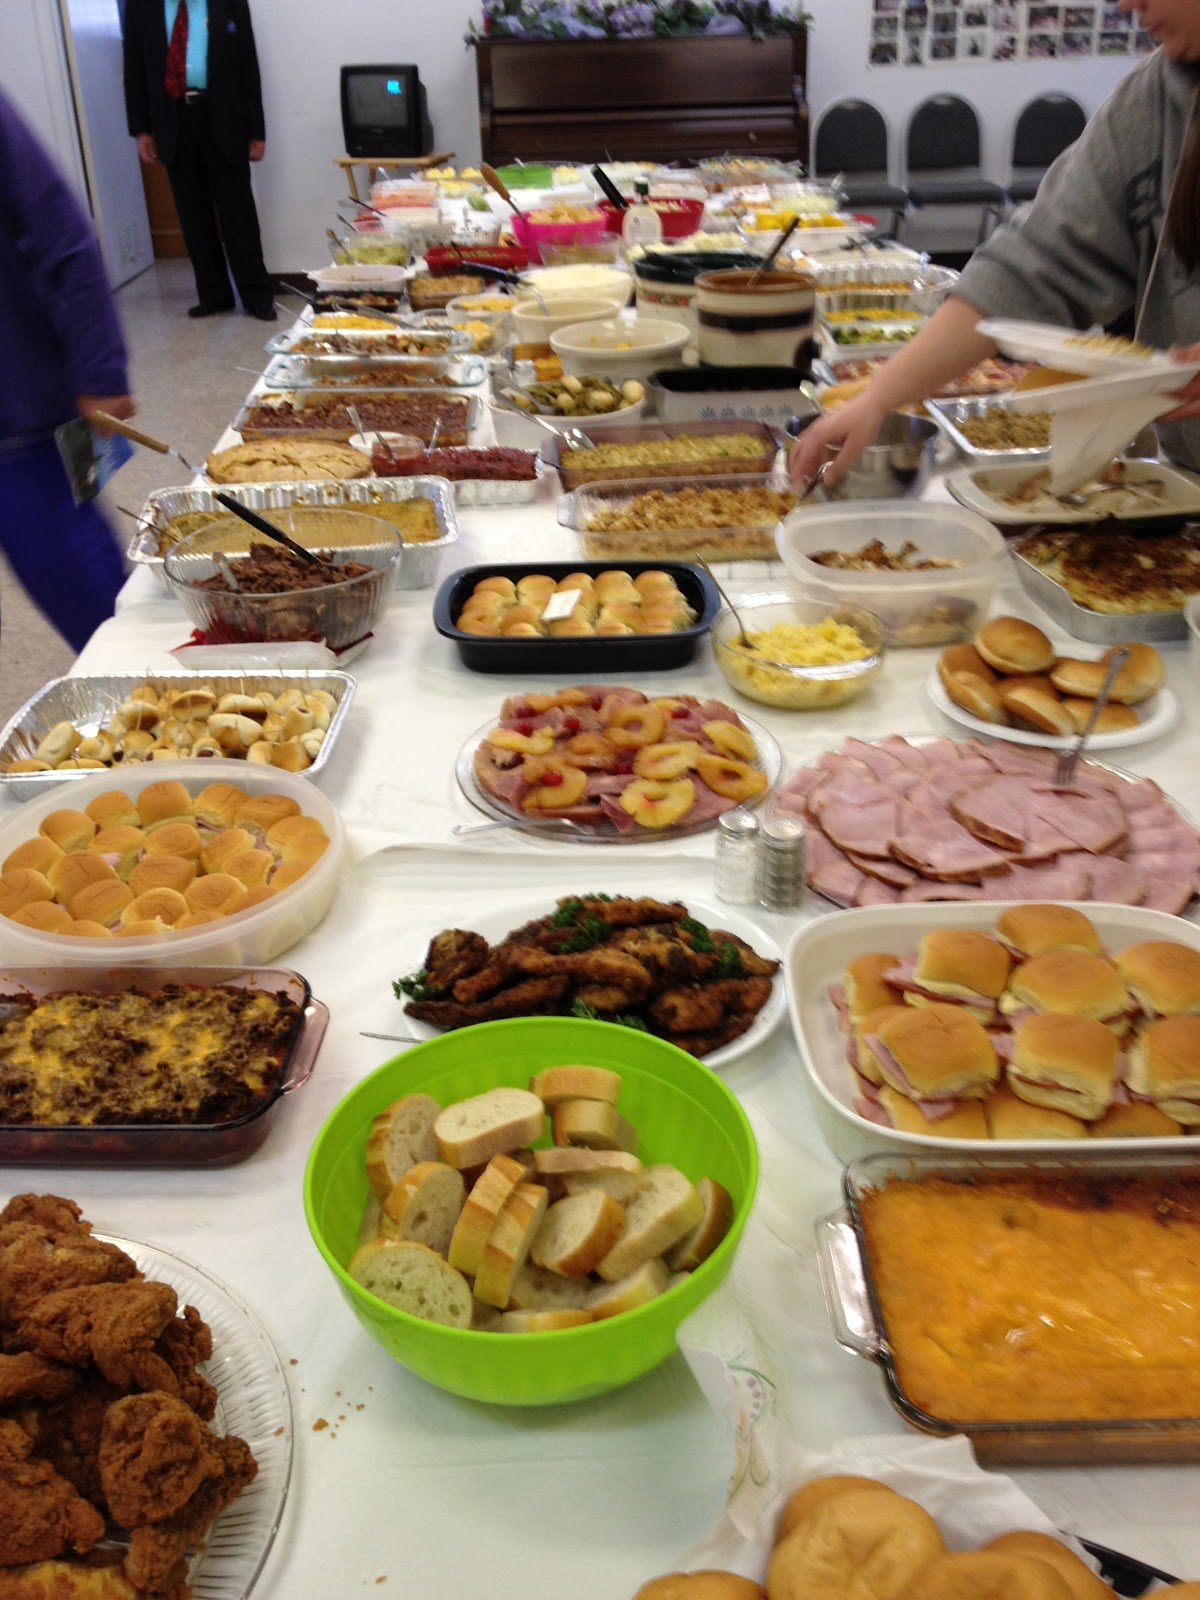 Classroom Potluck Ideas ~ Top dishes to bring the church potluck walking with